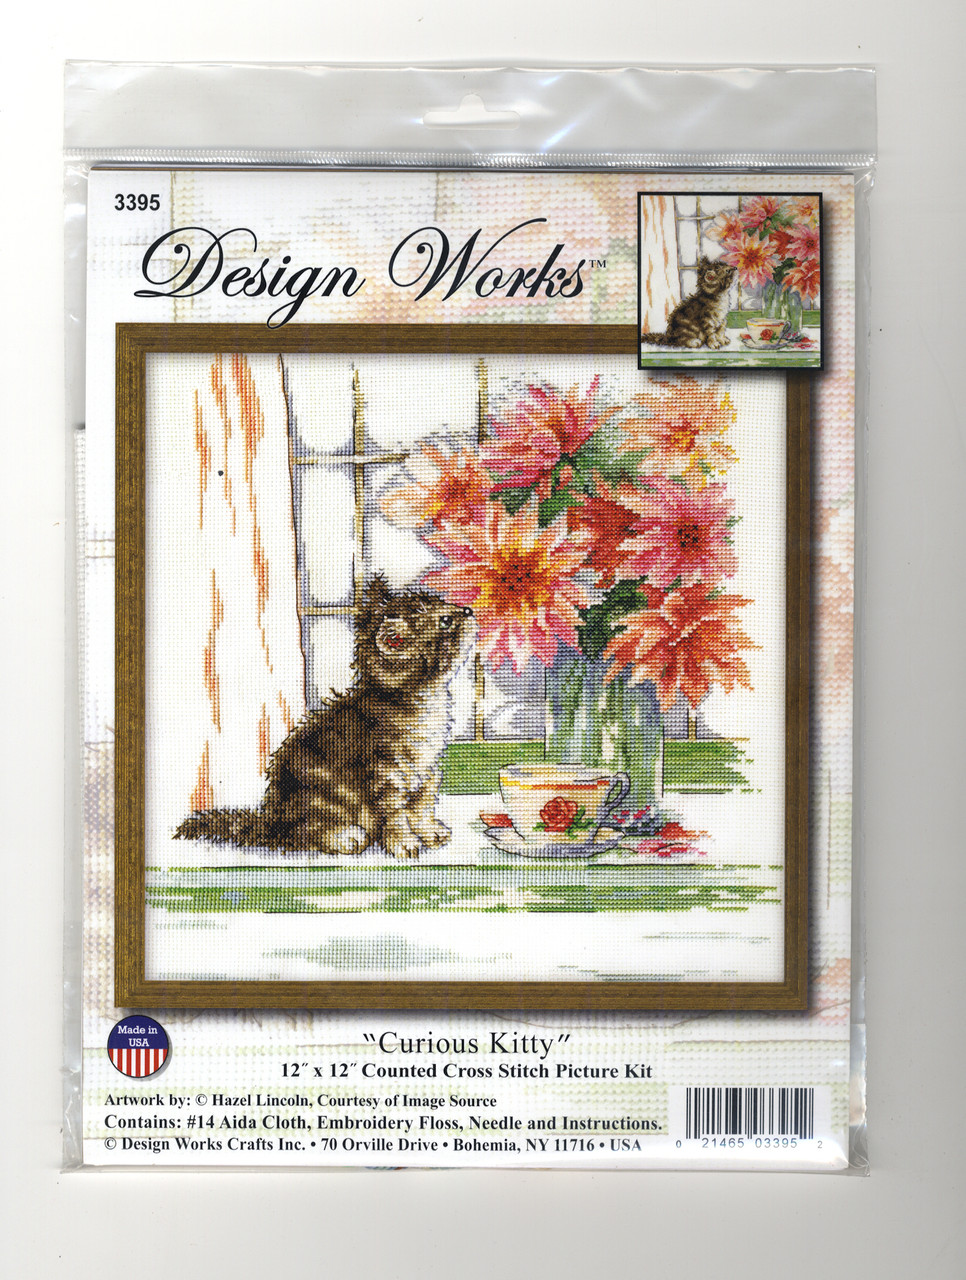 Design Works - Curious Kitty